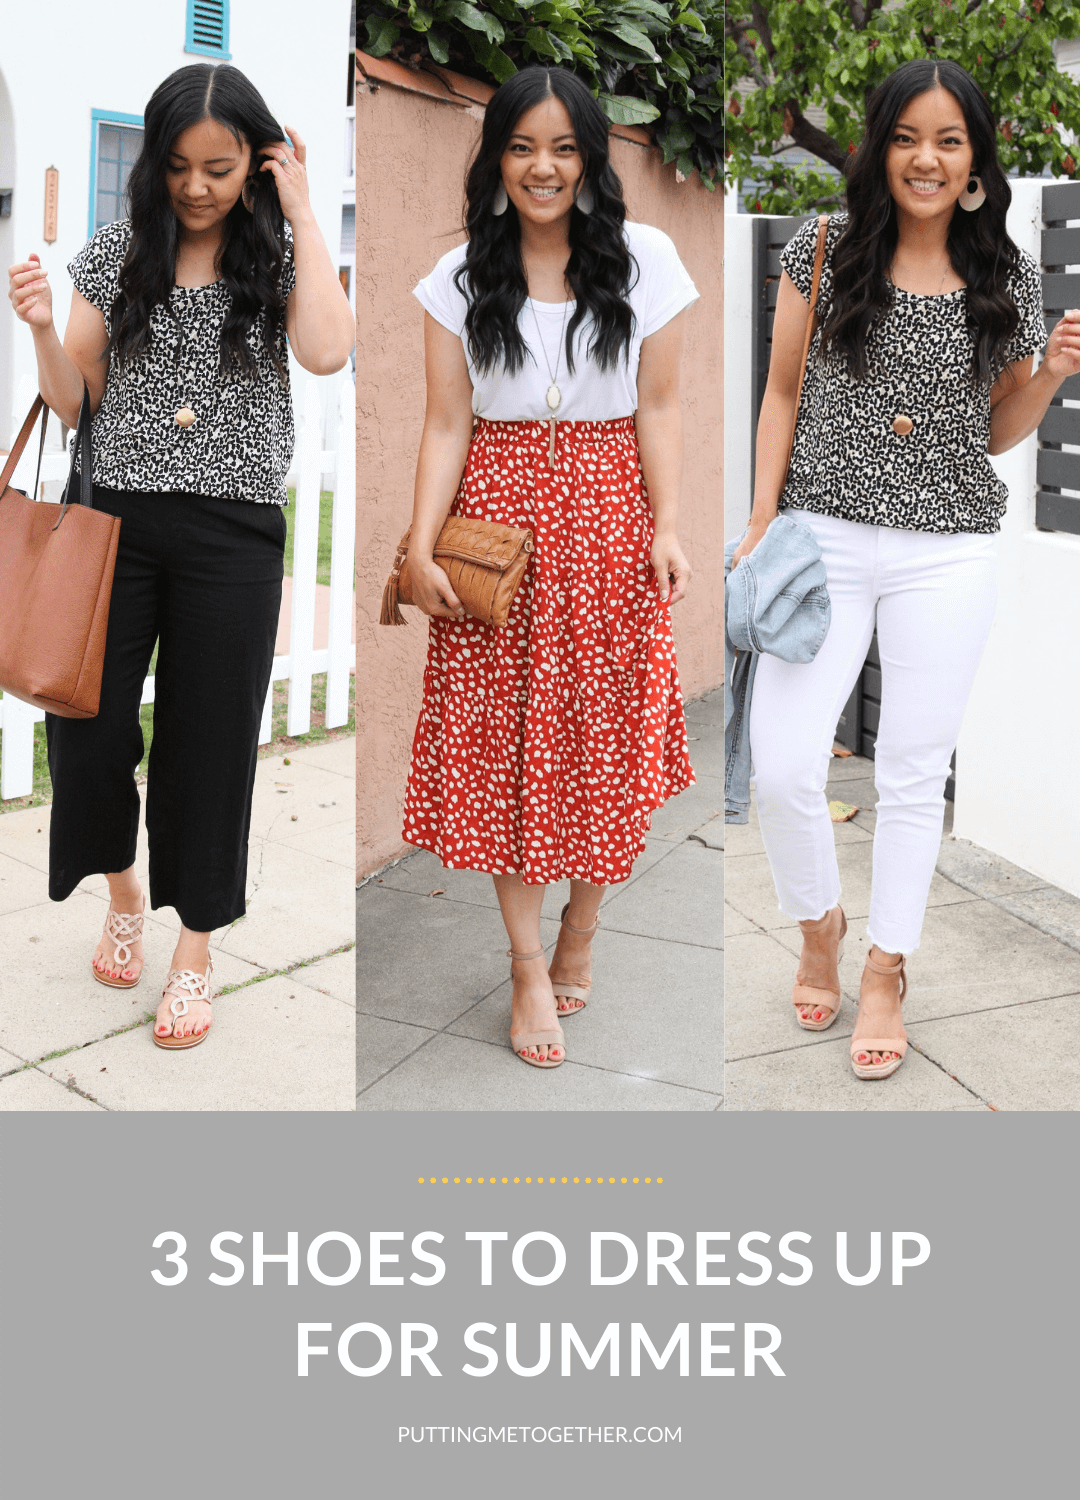 3 Shoes to Dress Up For Summer